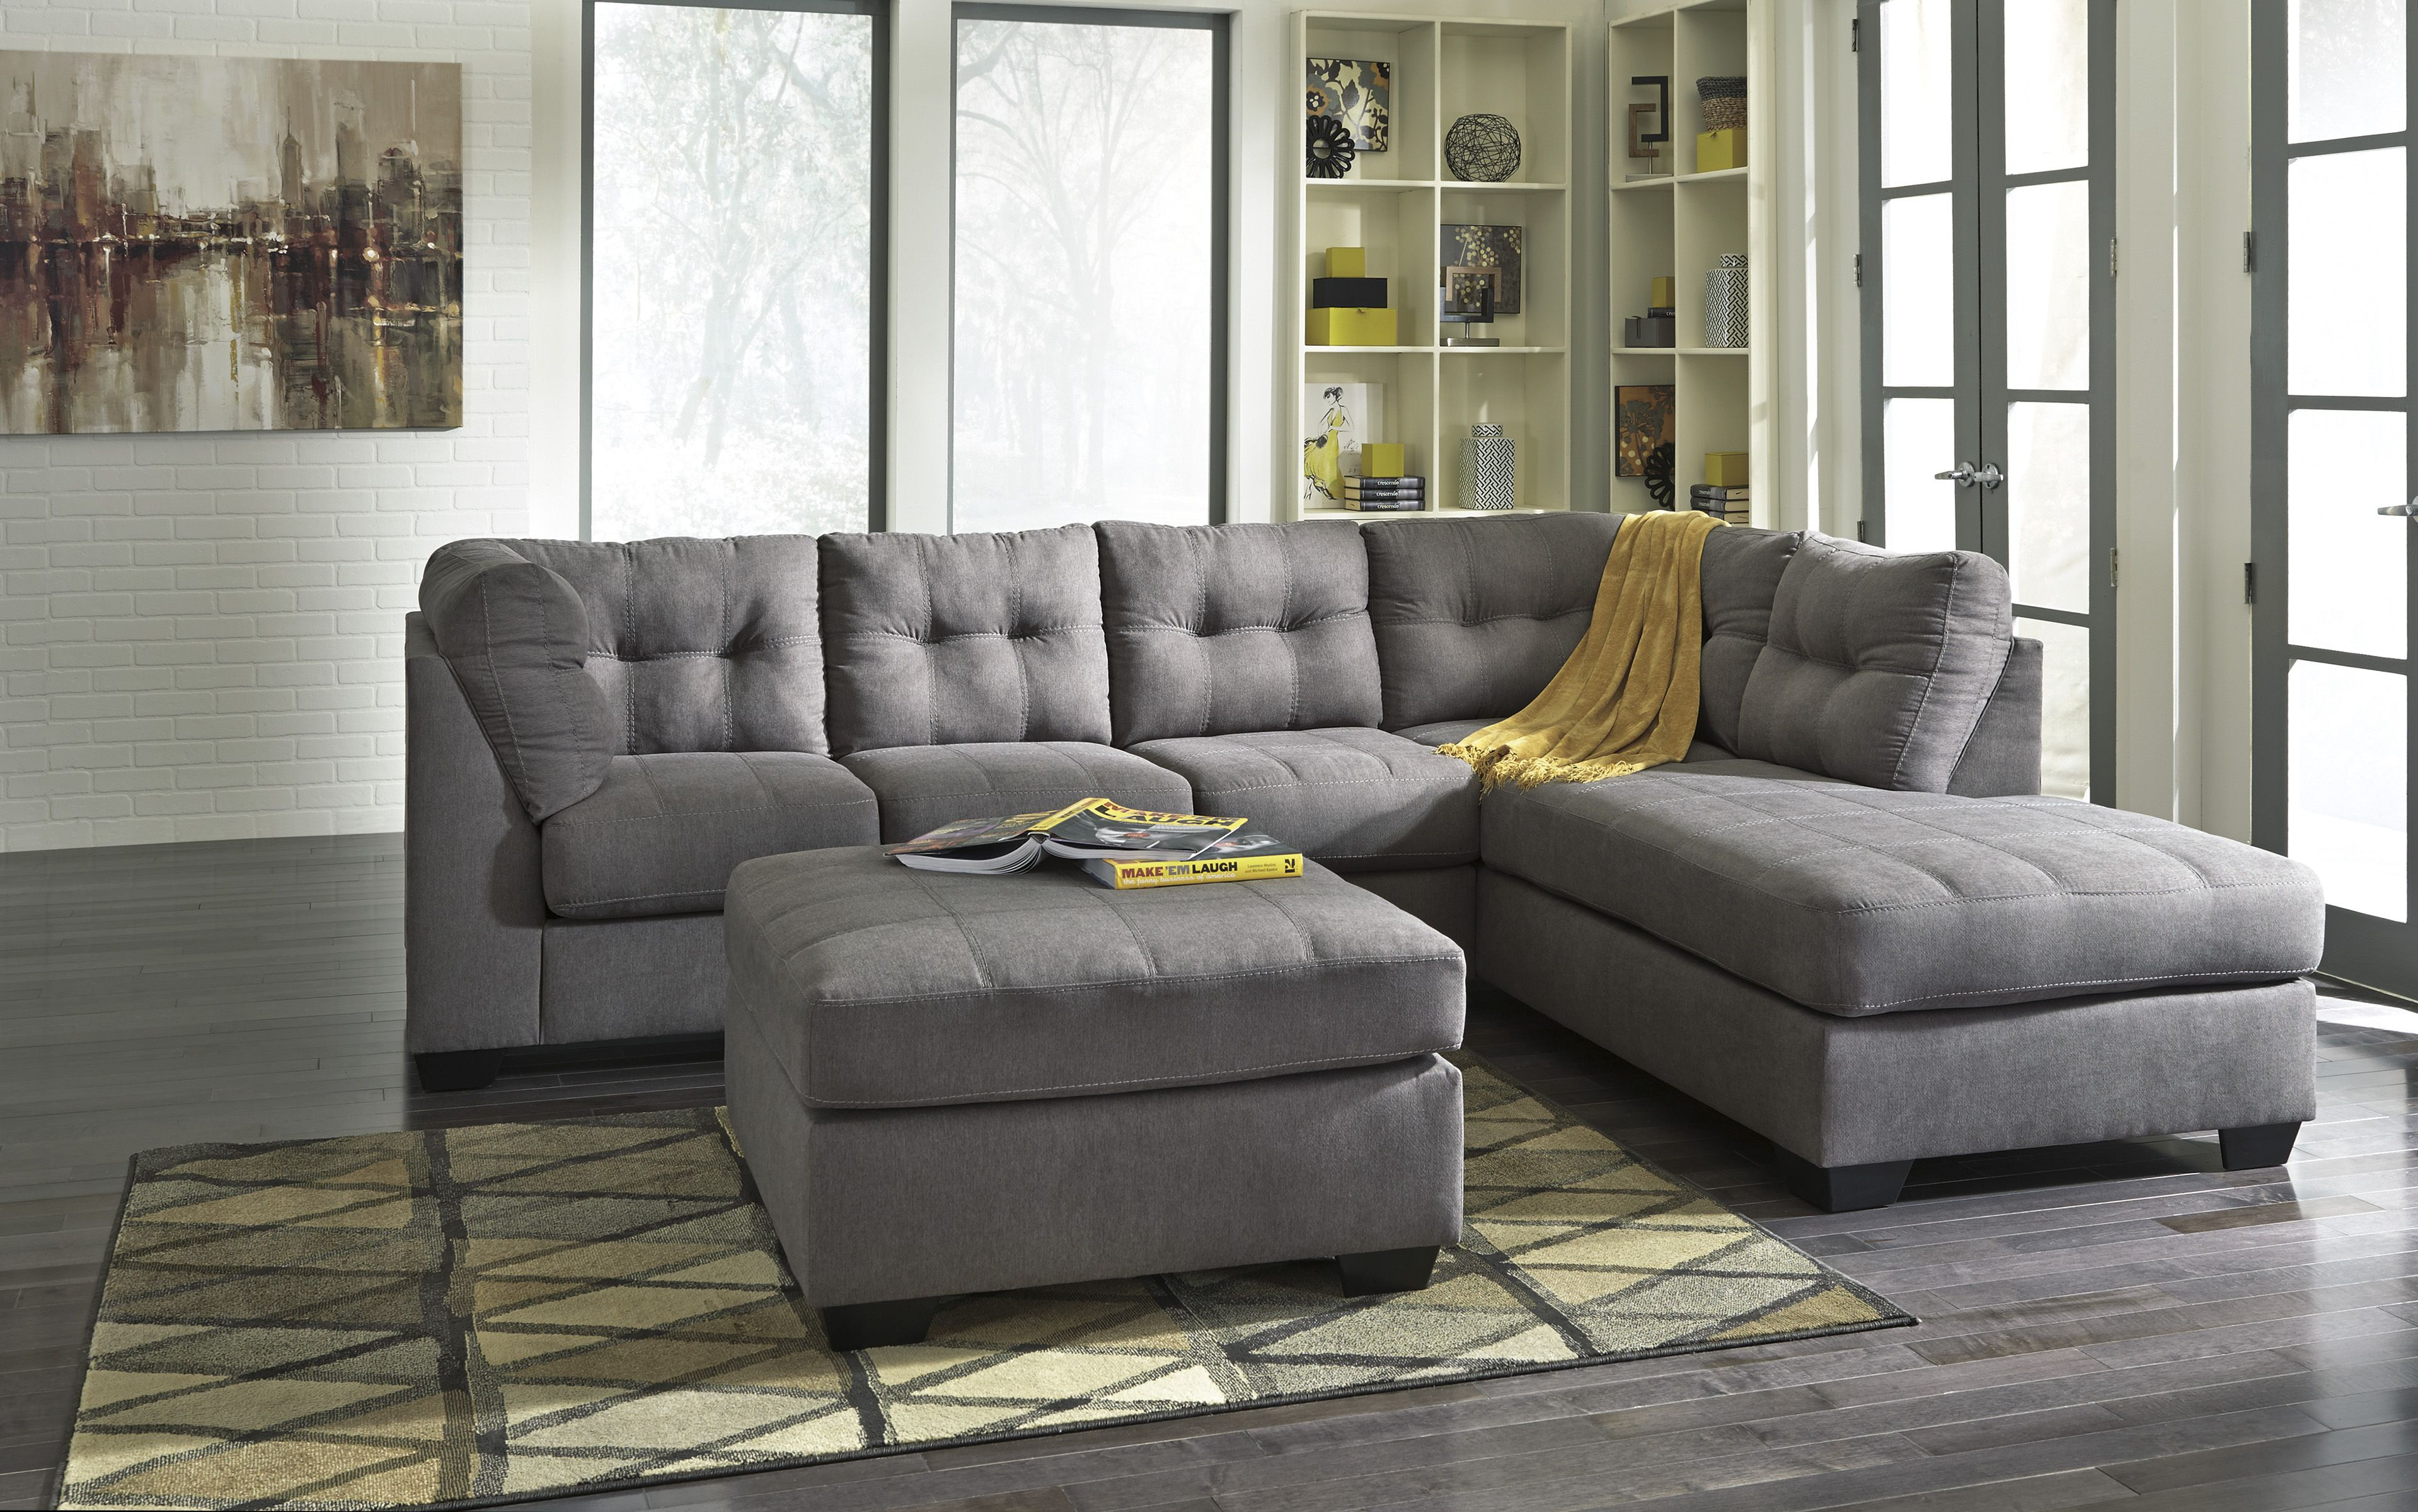 Signature Designs Living Room Two Piece Sectional Walker